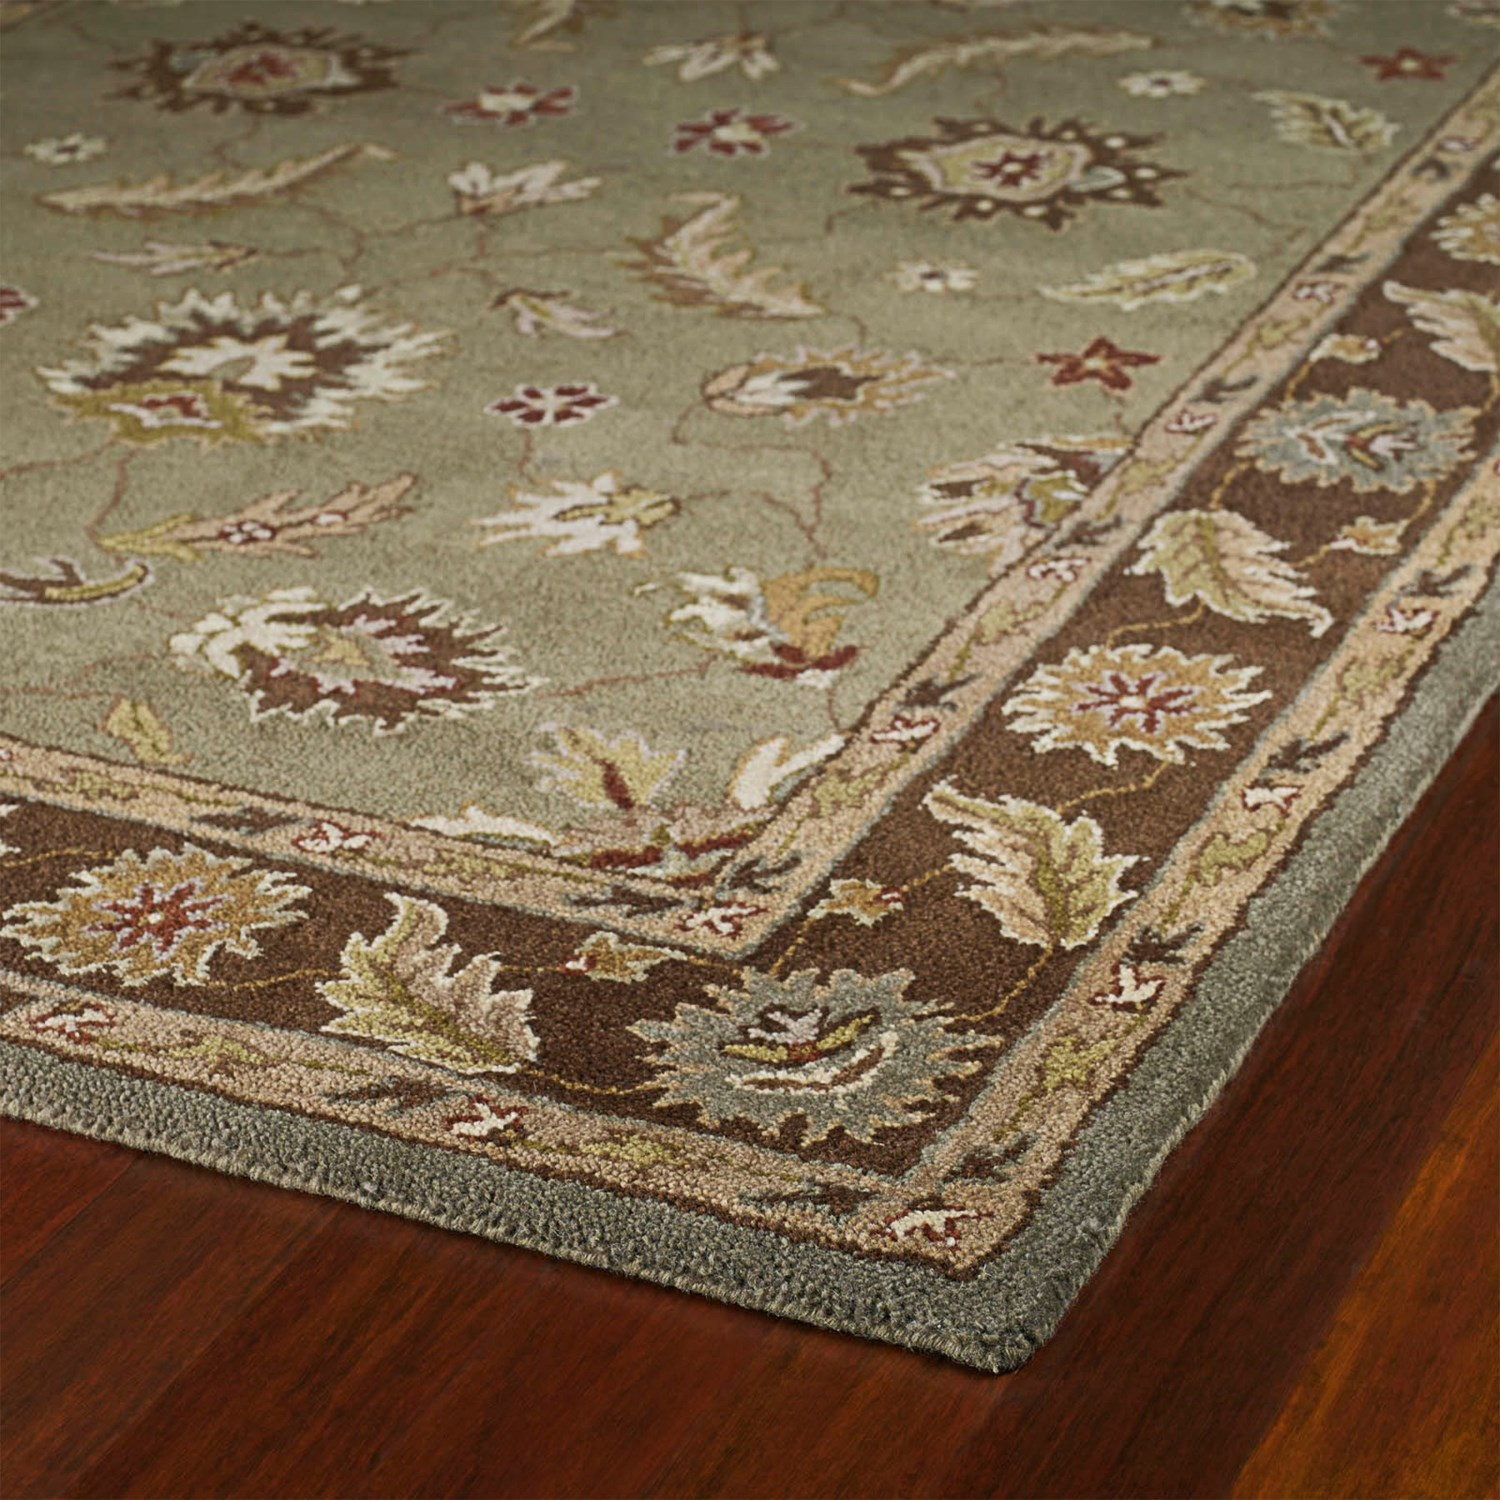 kaleen presidential picks wool area rug 8x10 6560g save 53